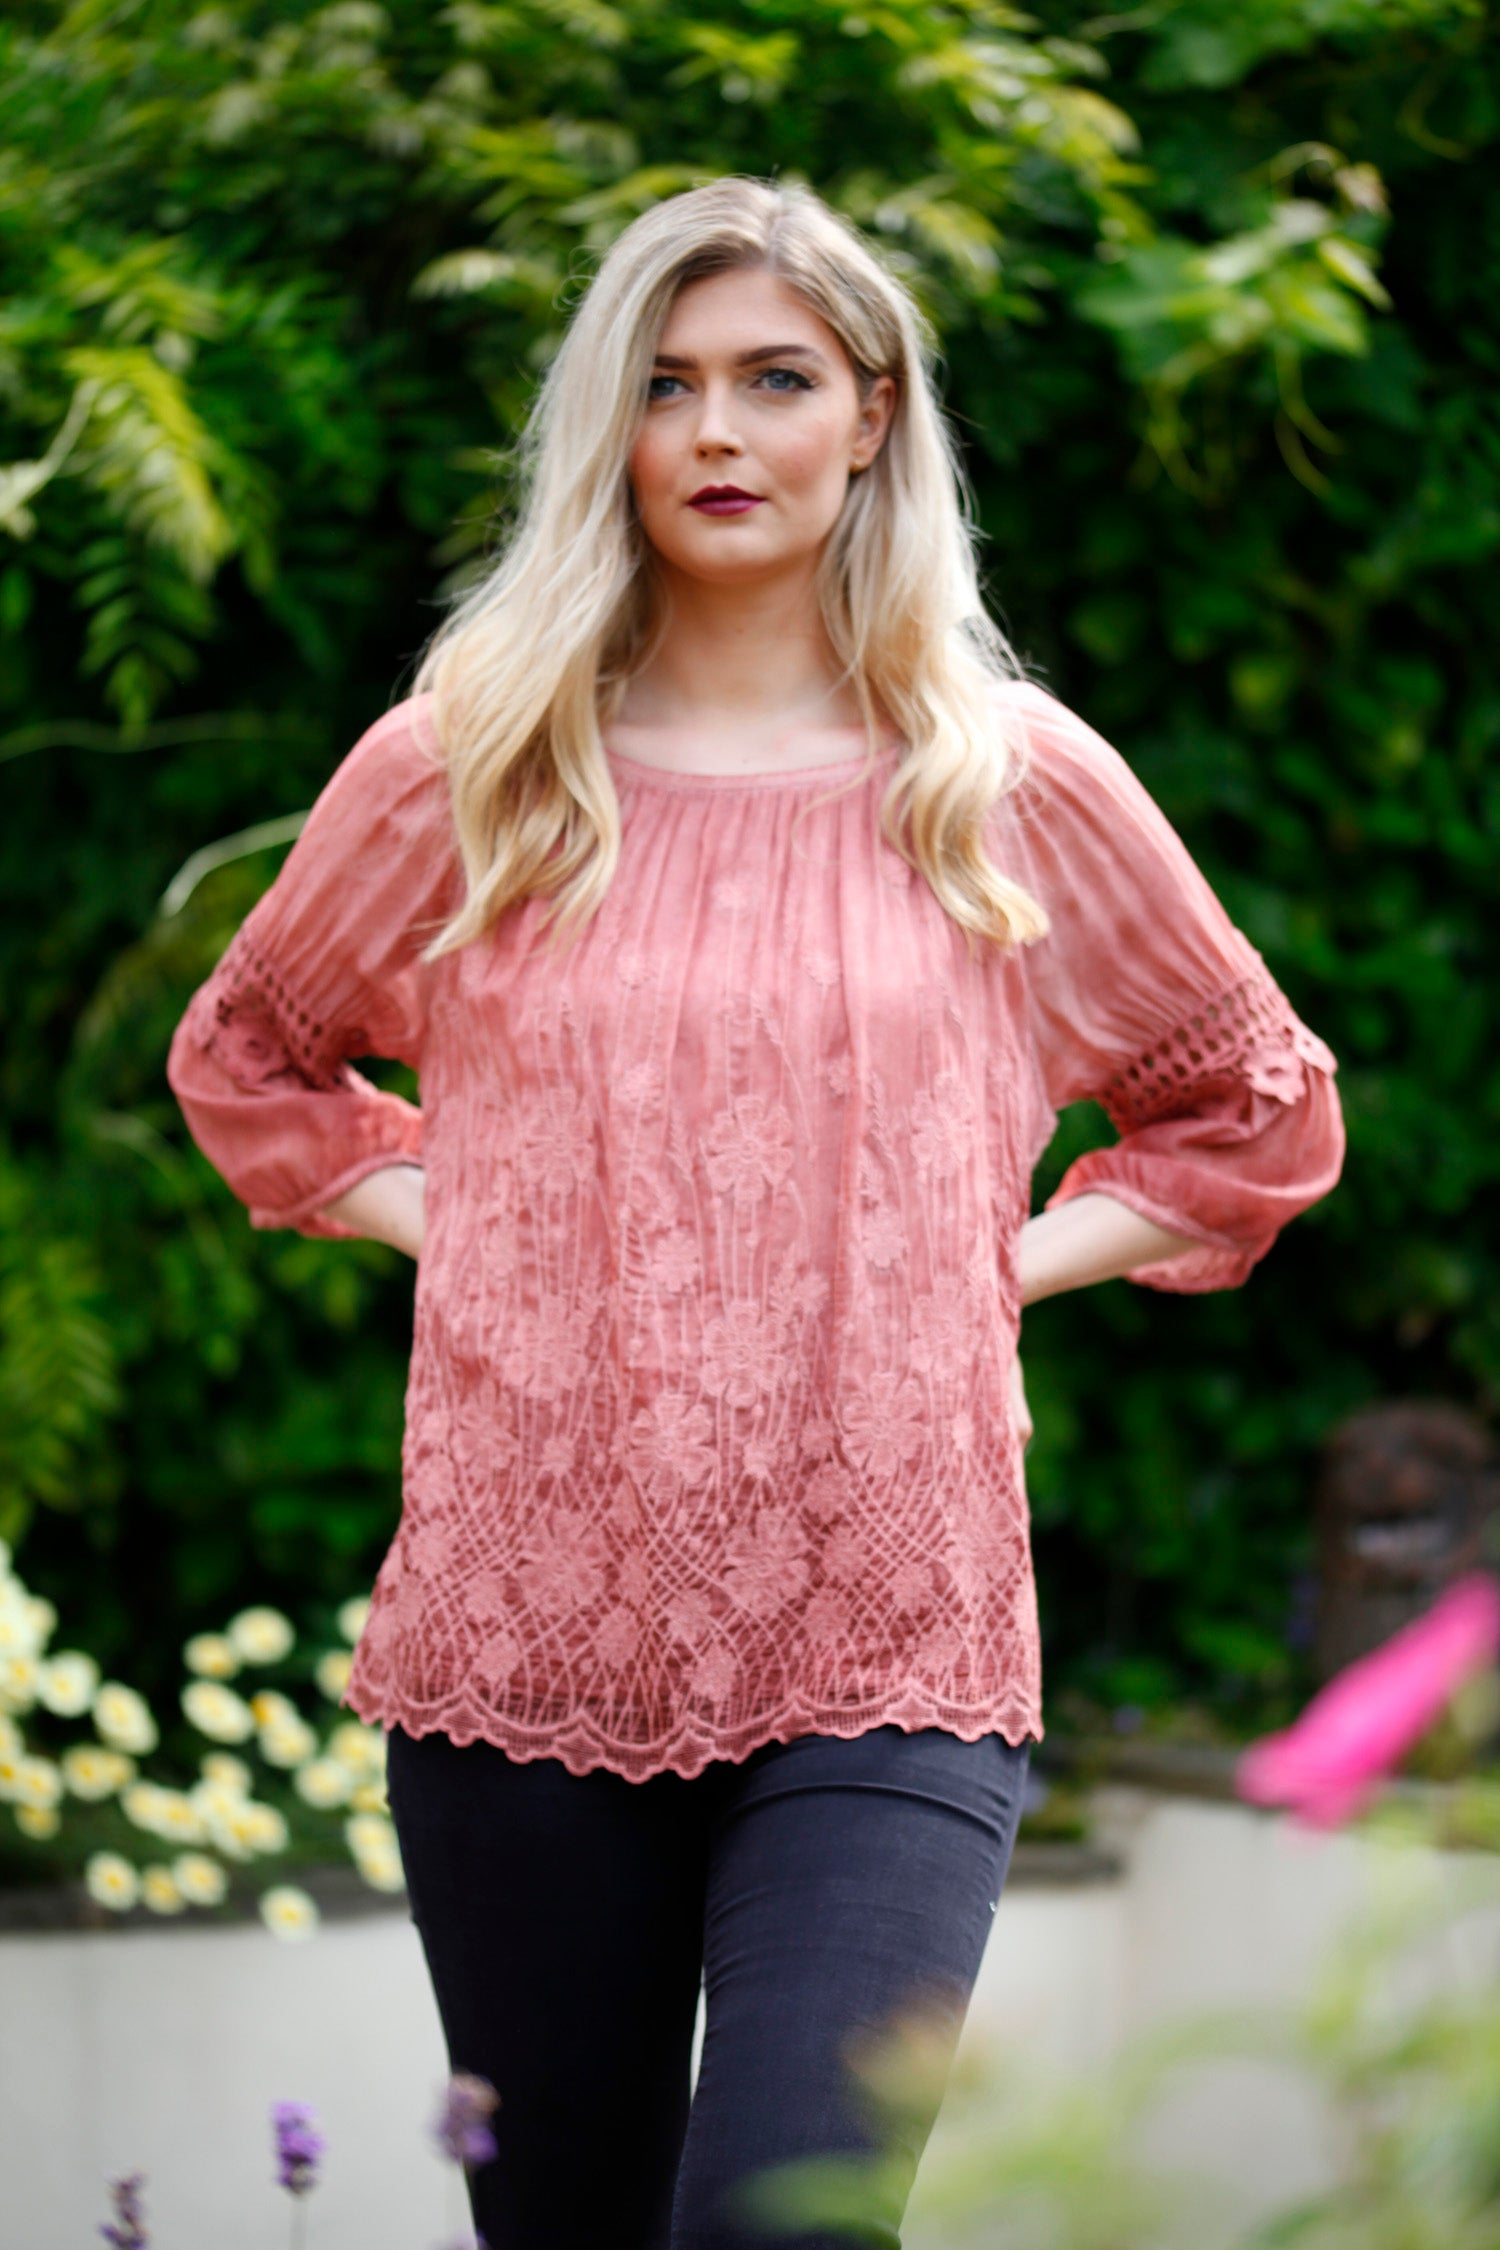 Cinnamon lace blouse